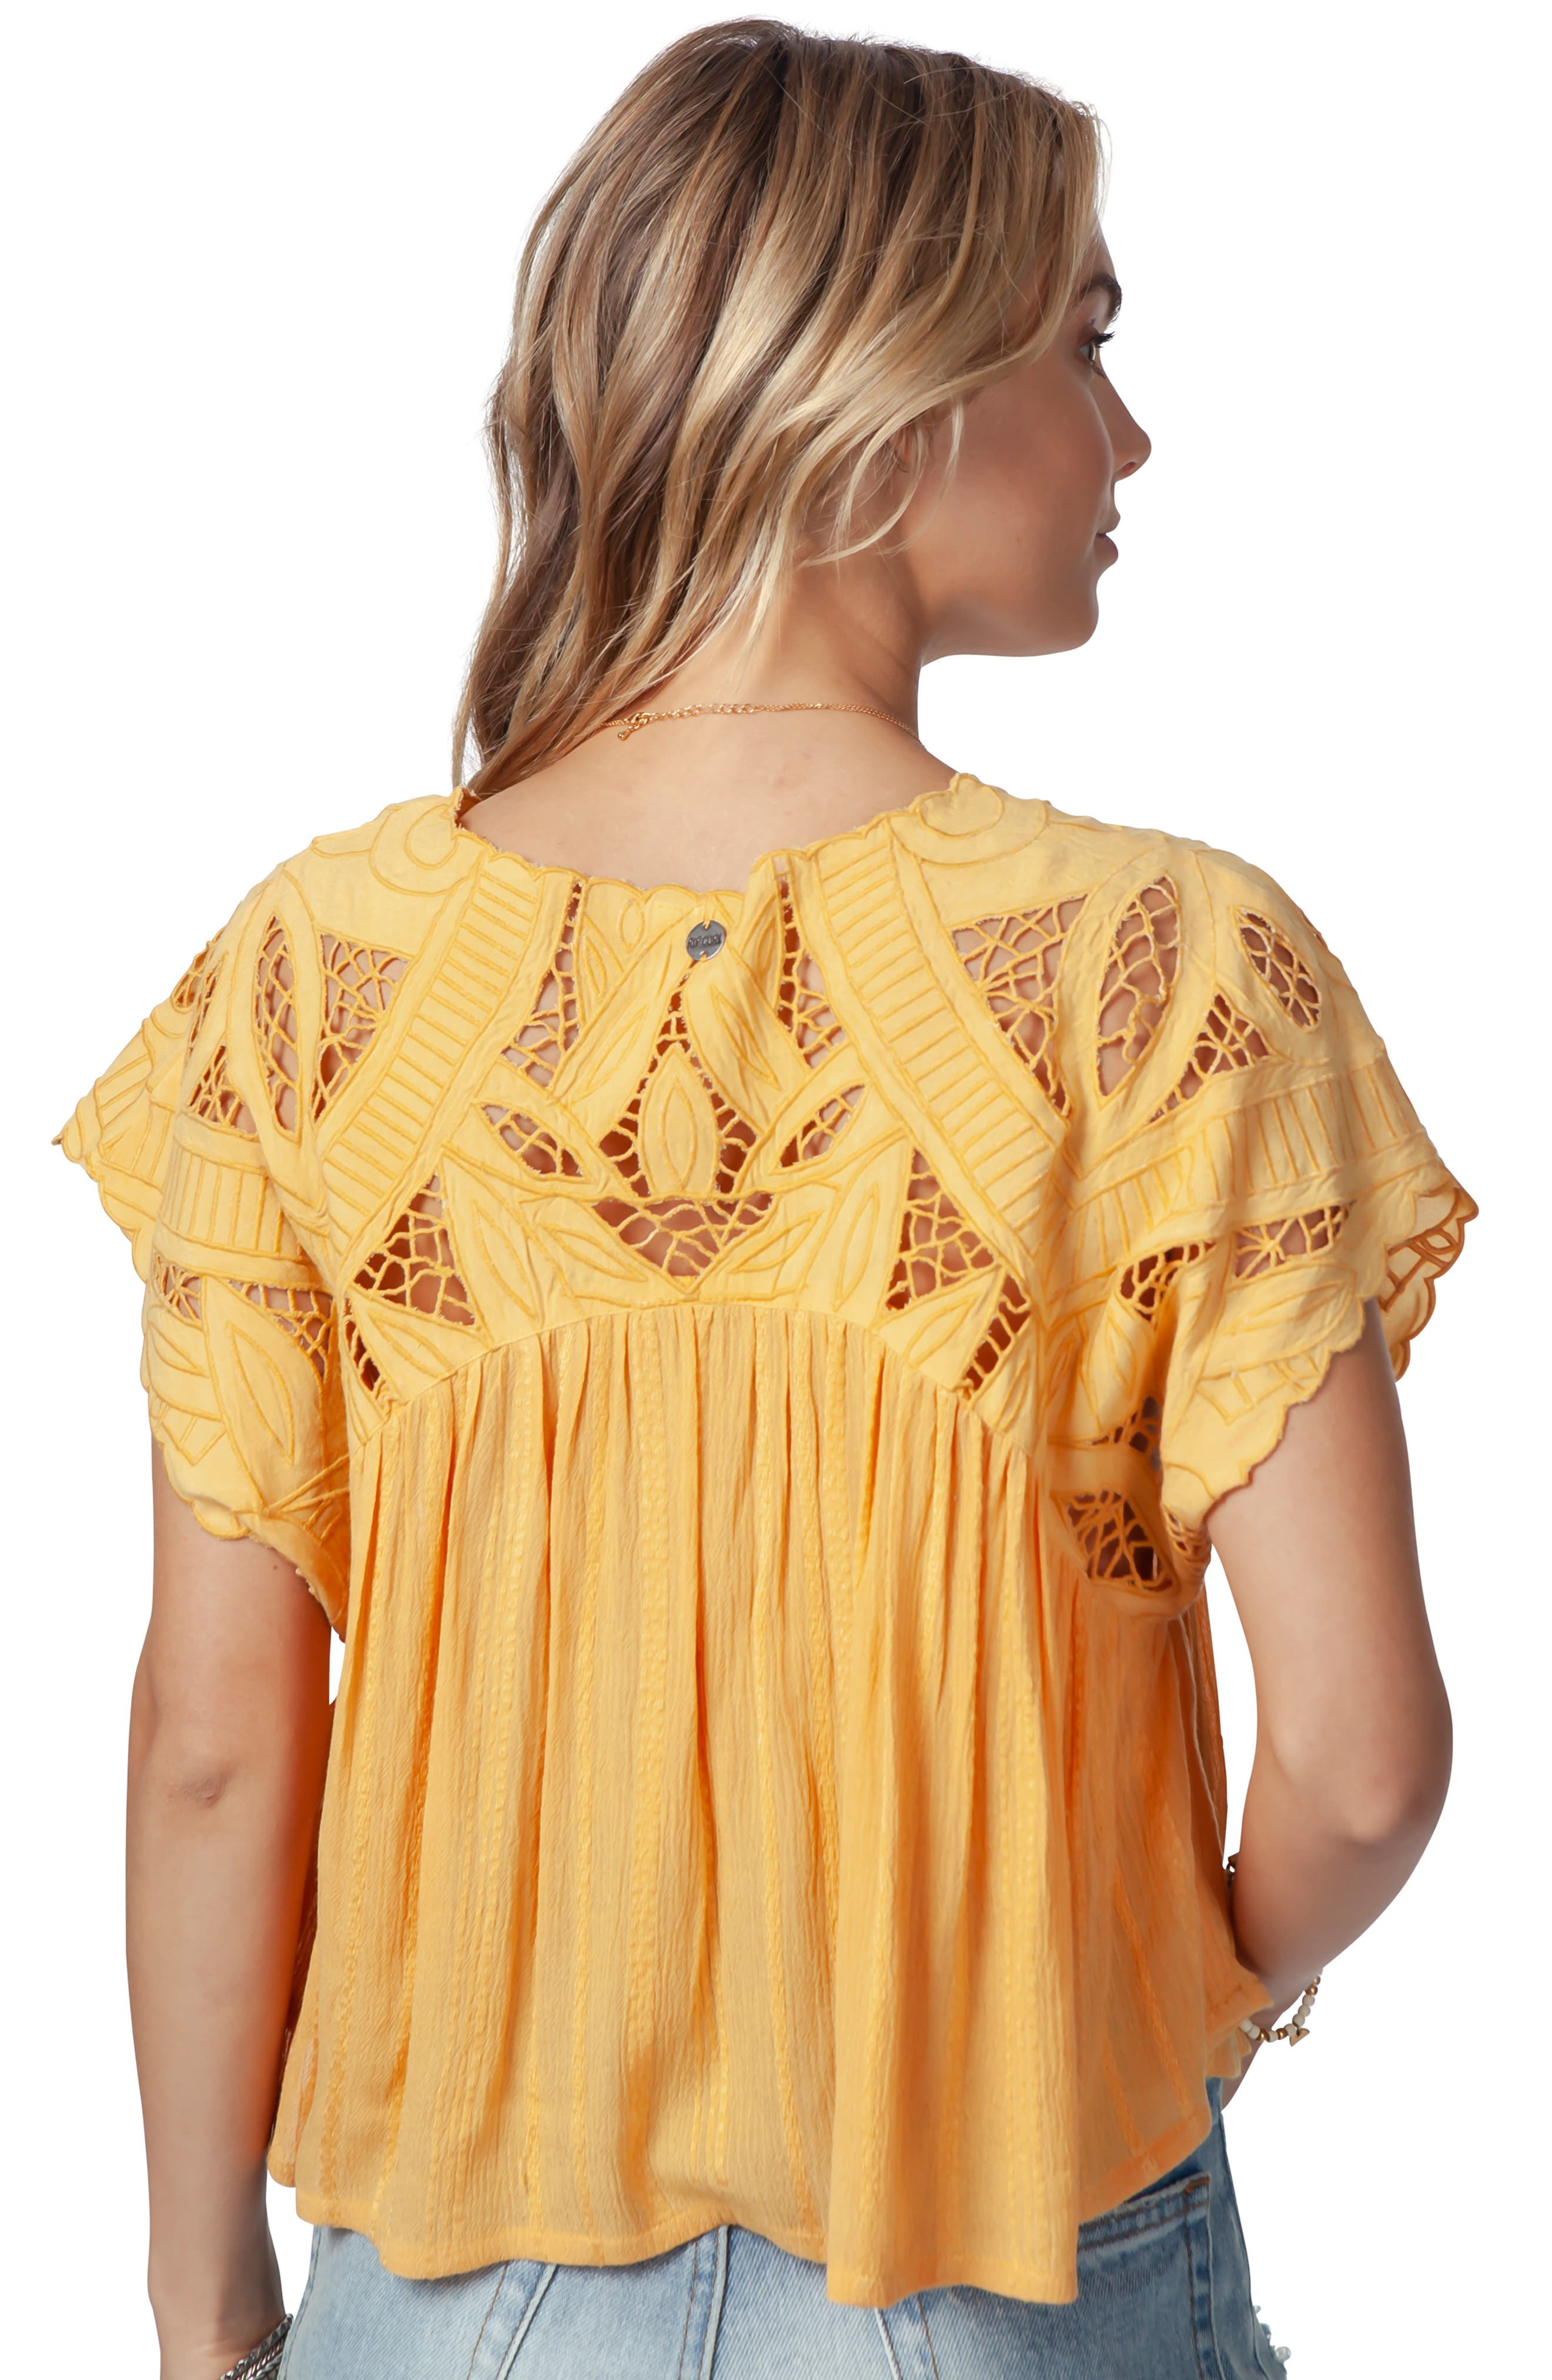 Seaview Cutwork Top,                             Alternate thumbnail 4, color,                             GOLD